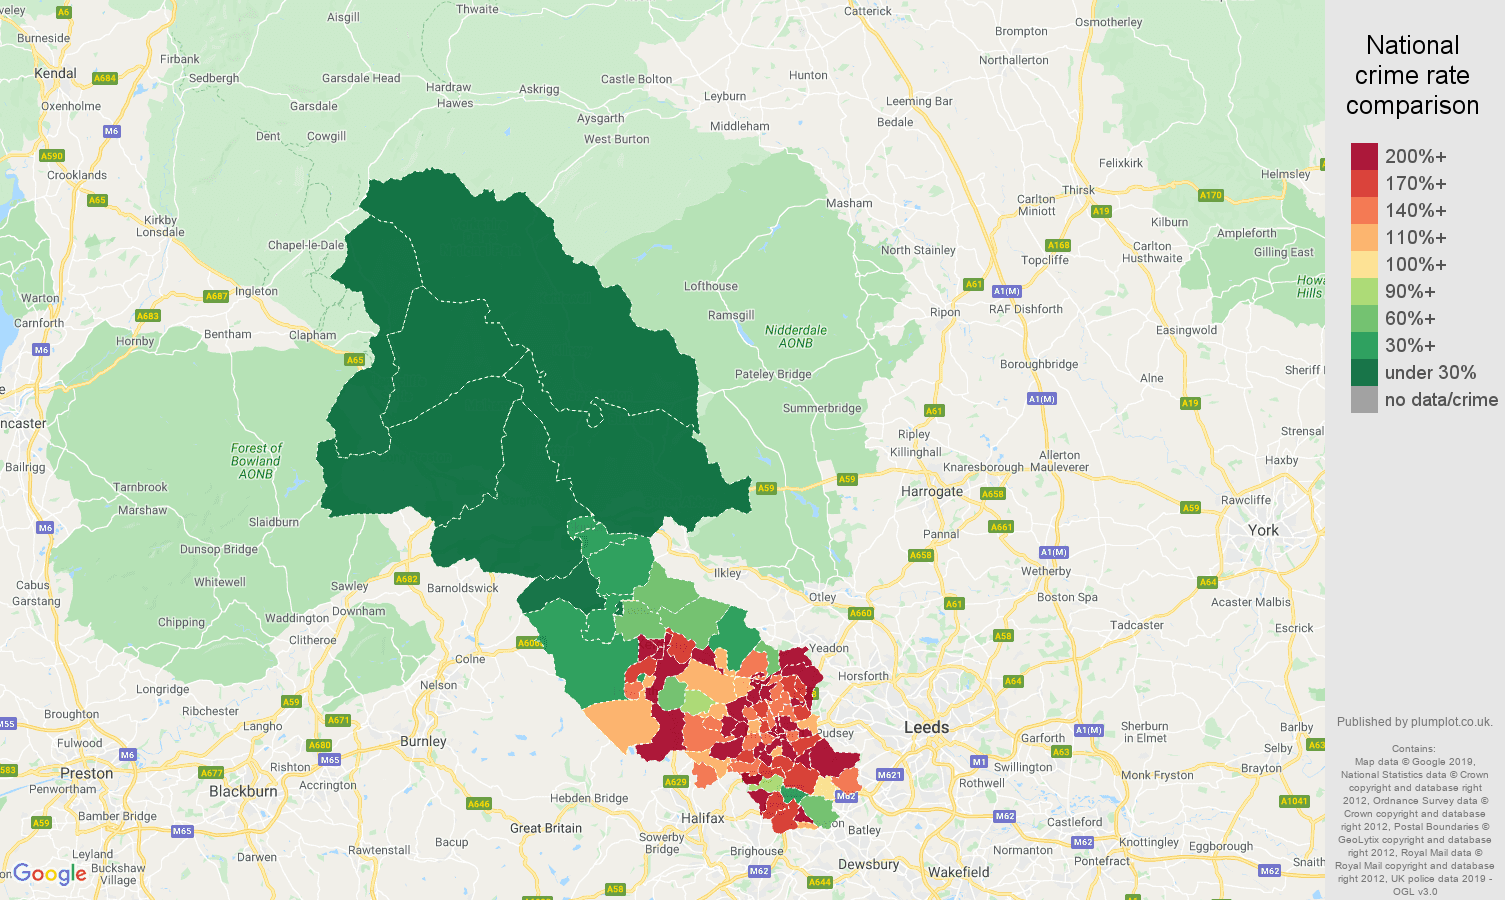 Bradford public order crime rate comparison map